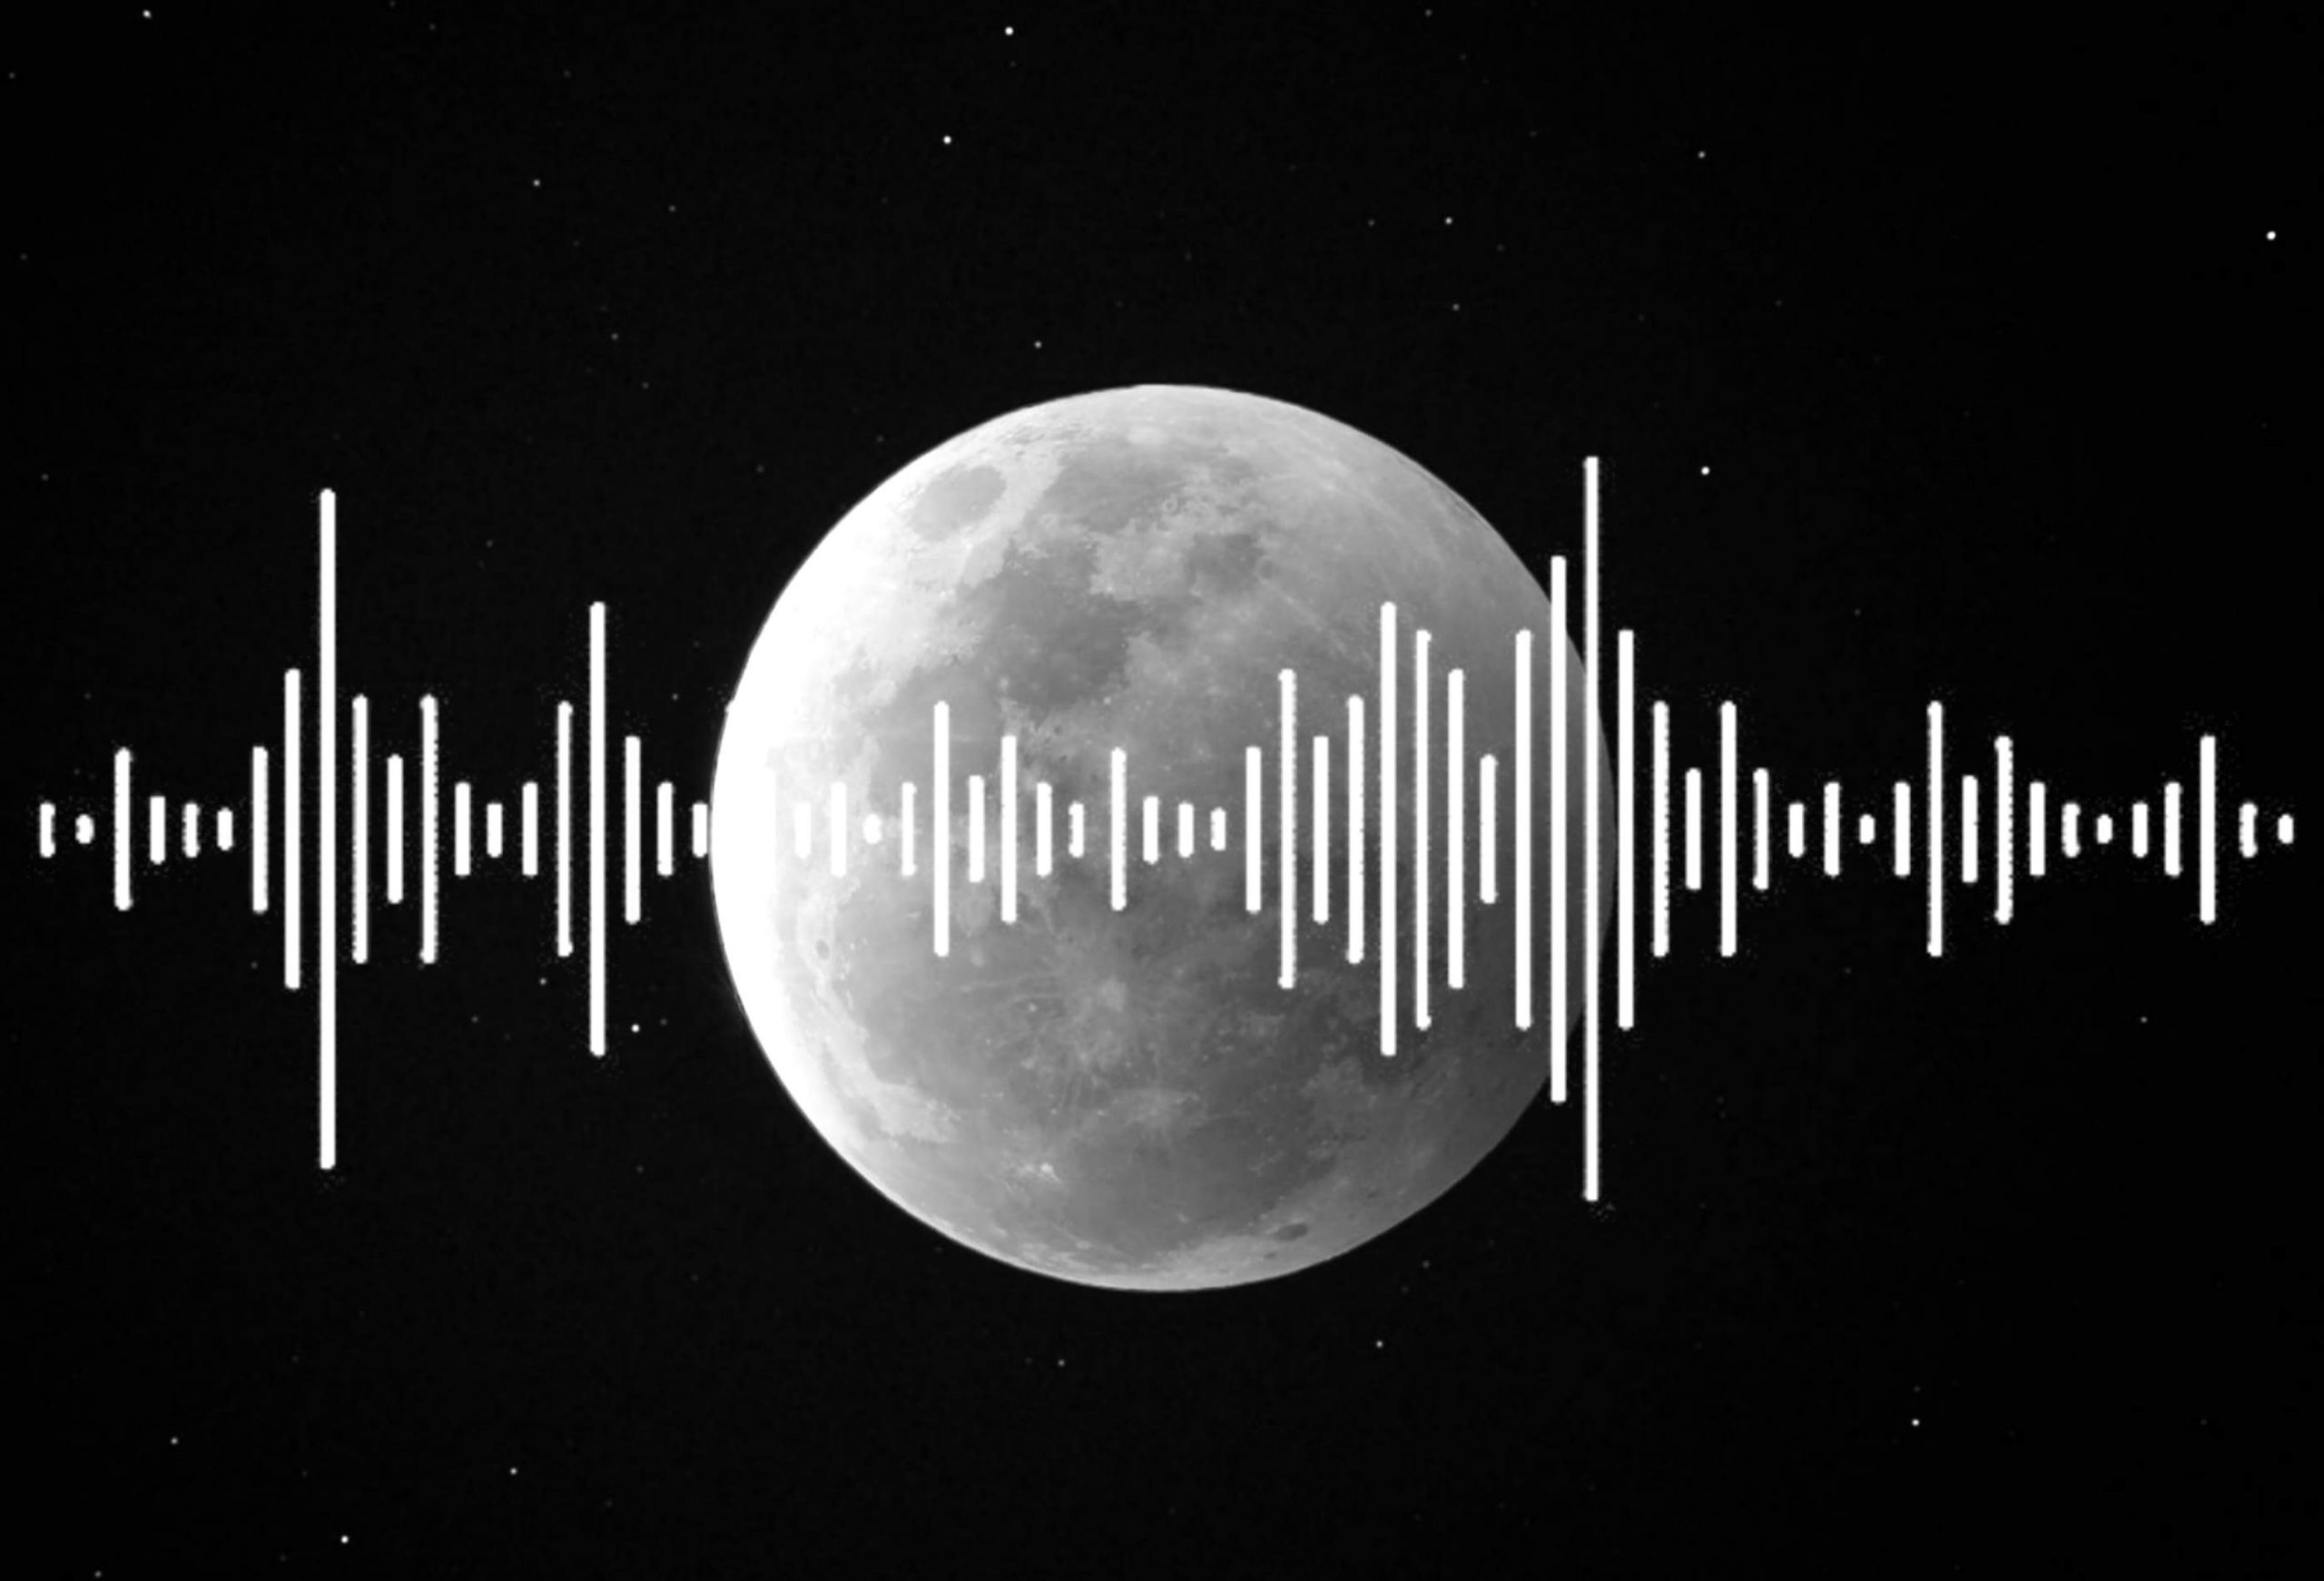 14 mysterious sounds that remain unexplained to this day 6